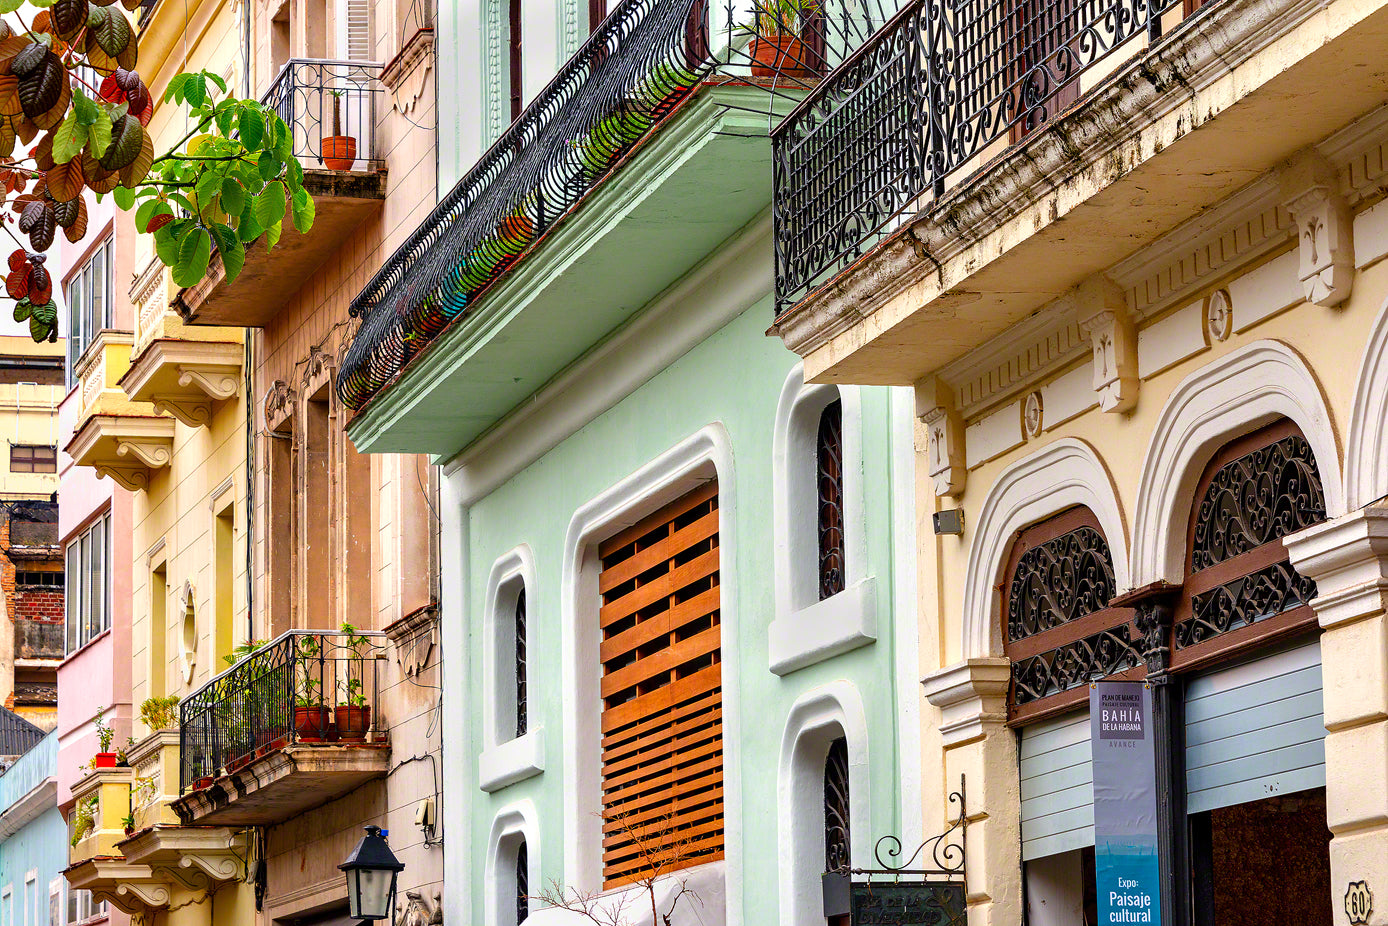 A photo of colorful buildings in Havana, Cuba